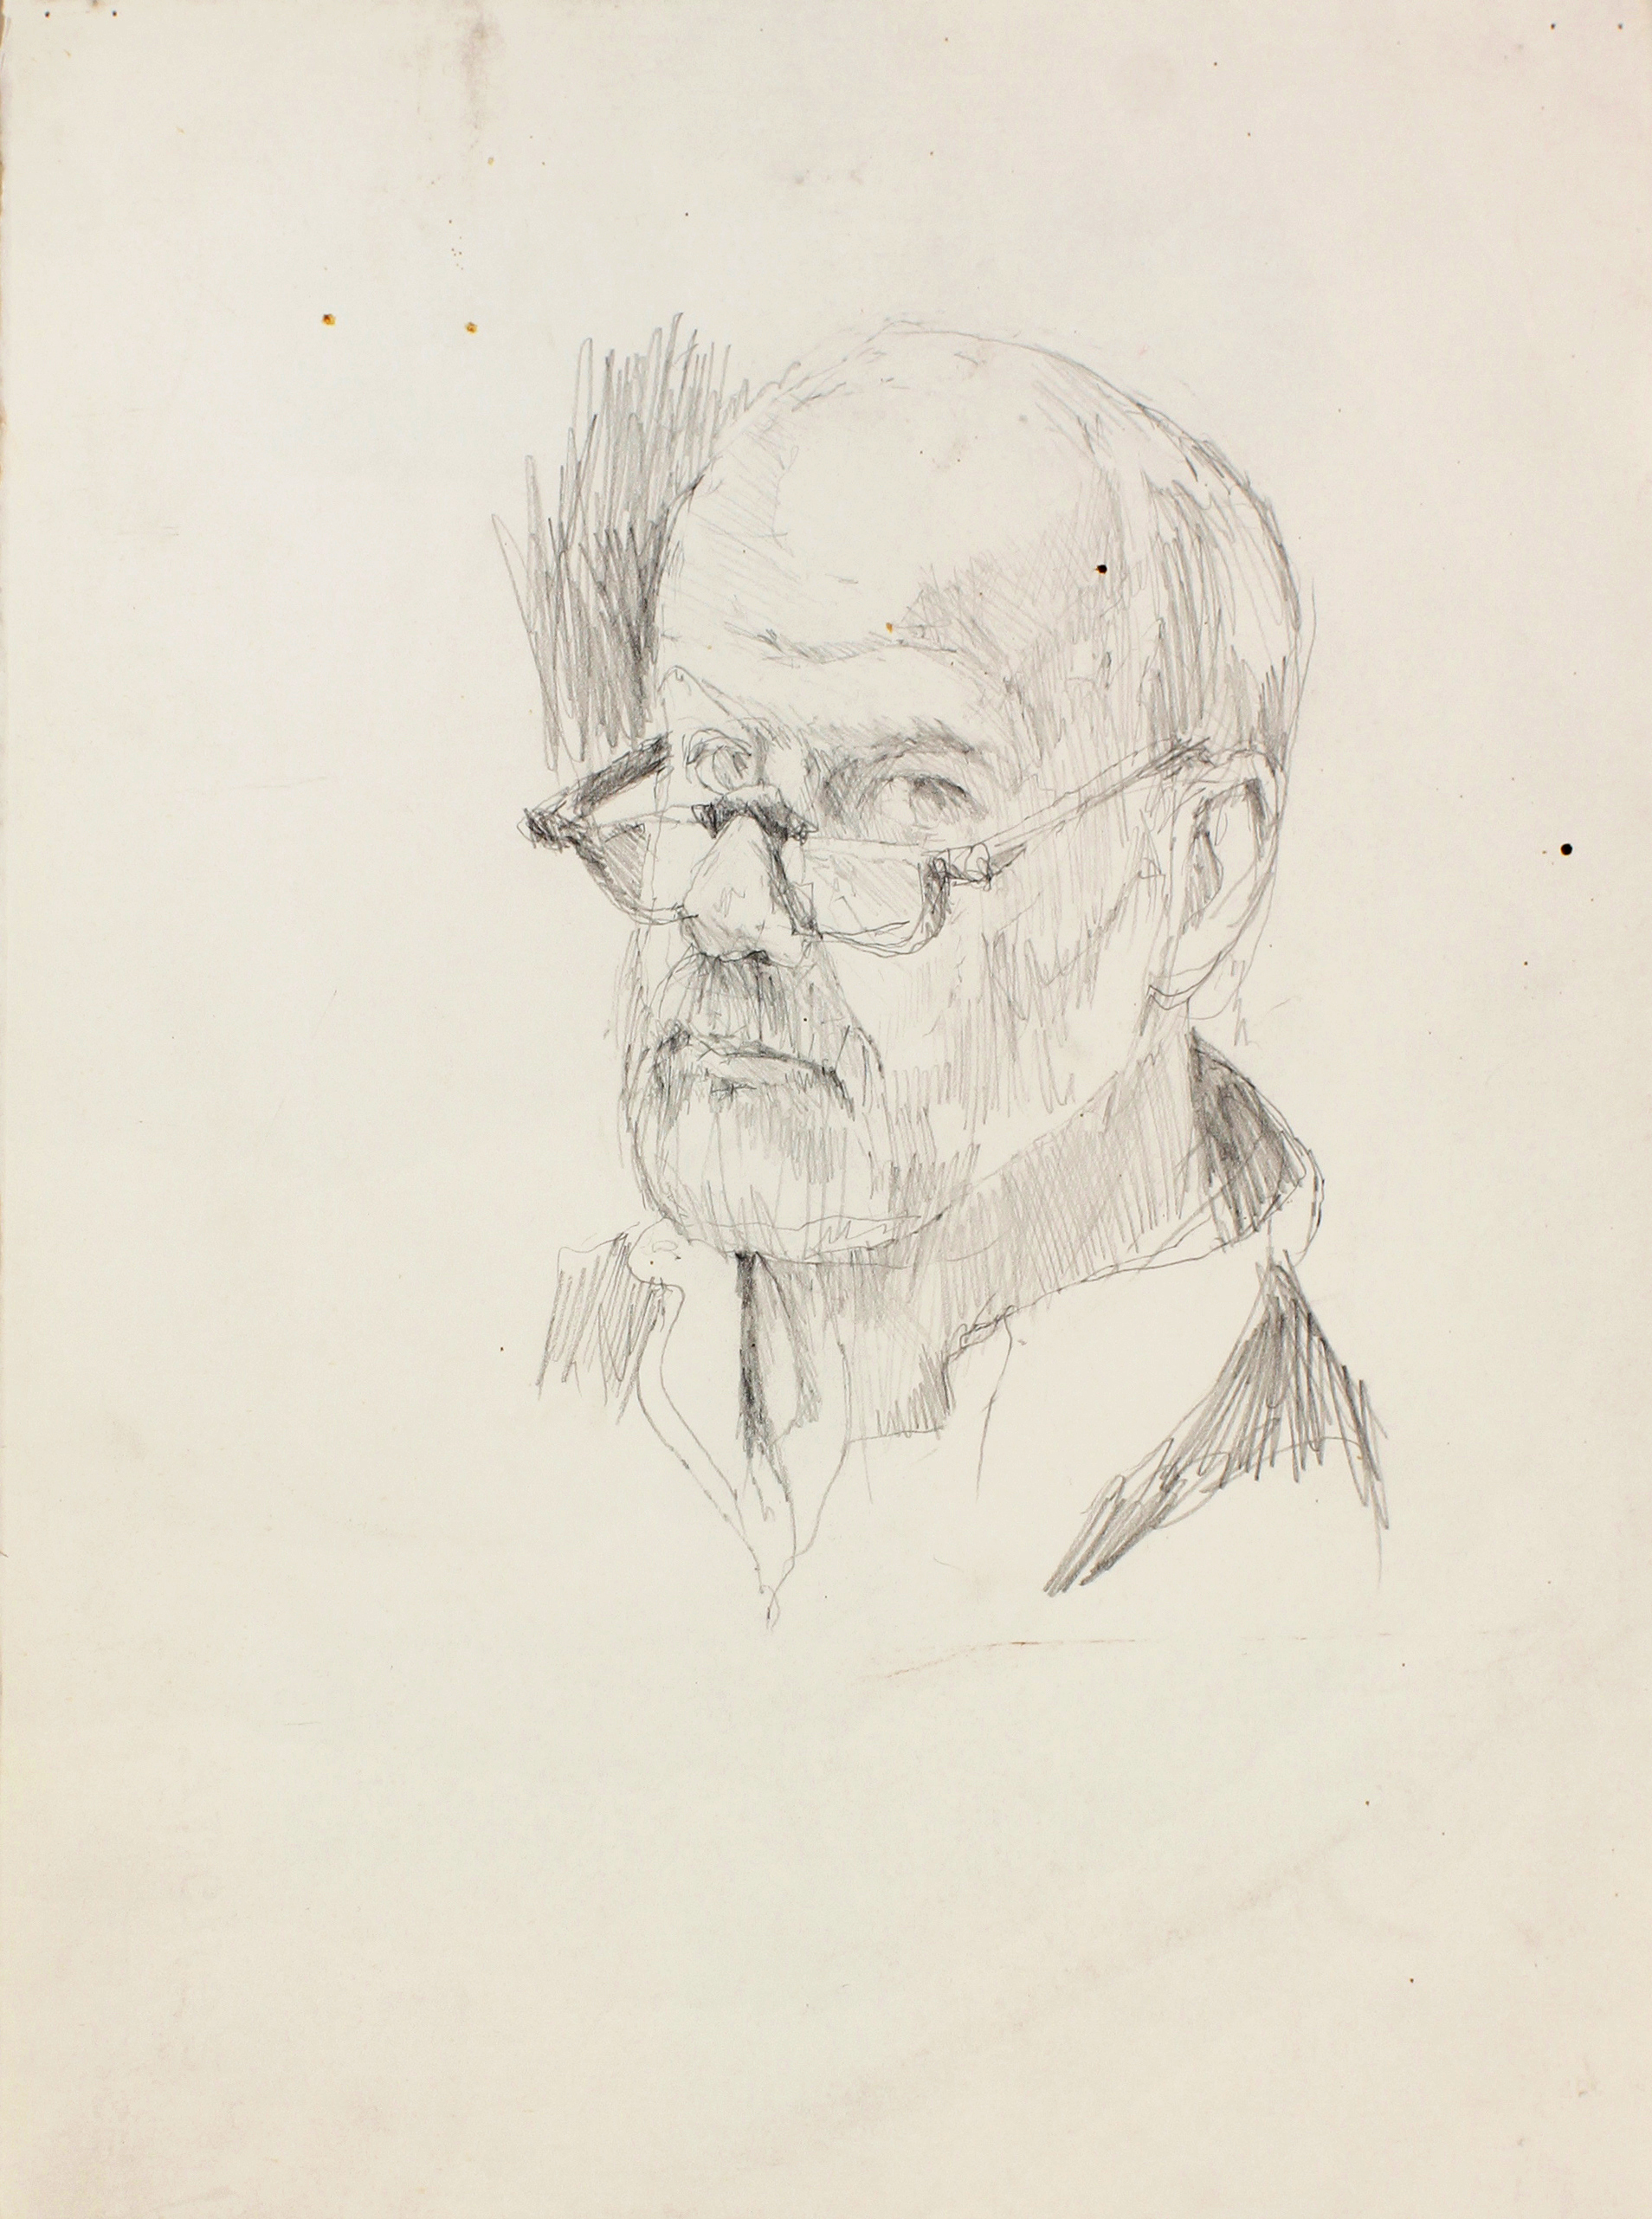 1990s_Self_Portrait_with_Glasses_pencil_on_paper_14x10in_WPF494_IMG_3348.jpg